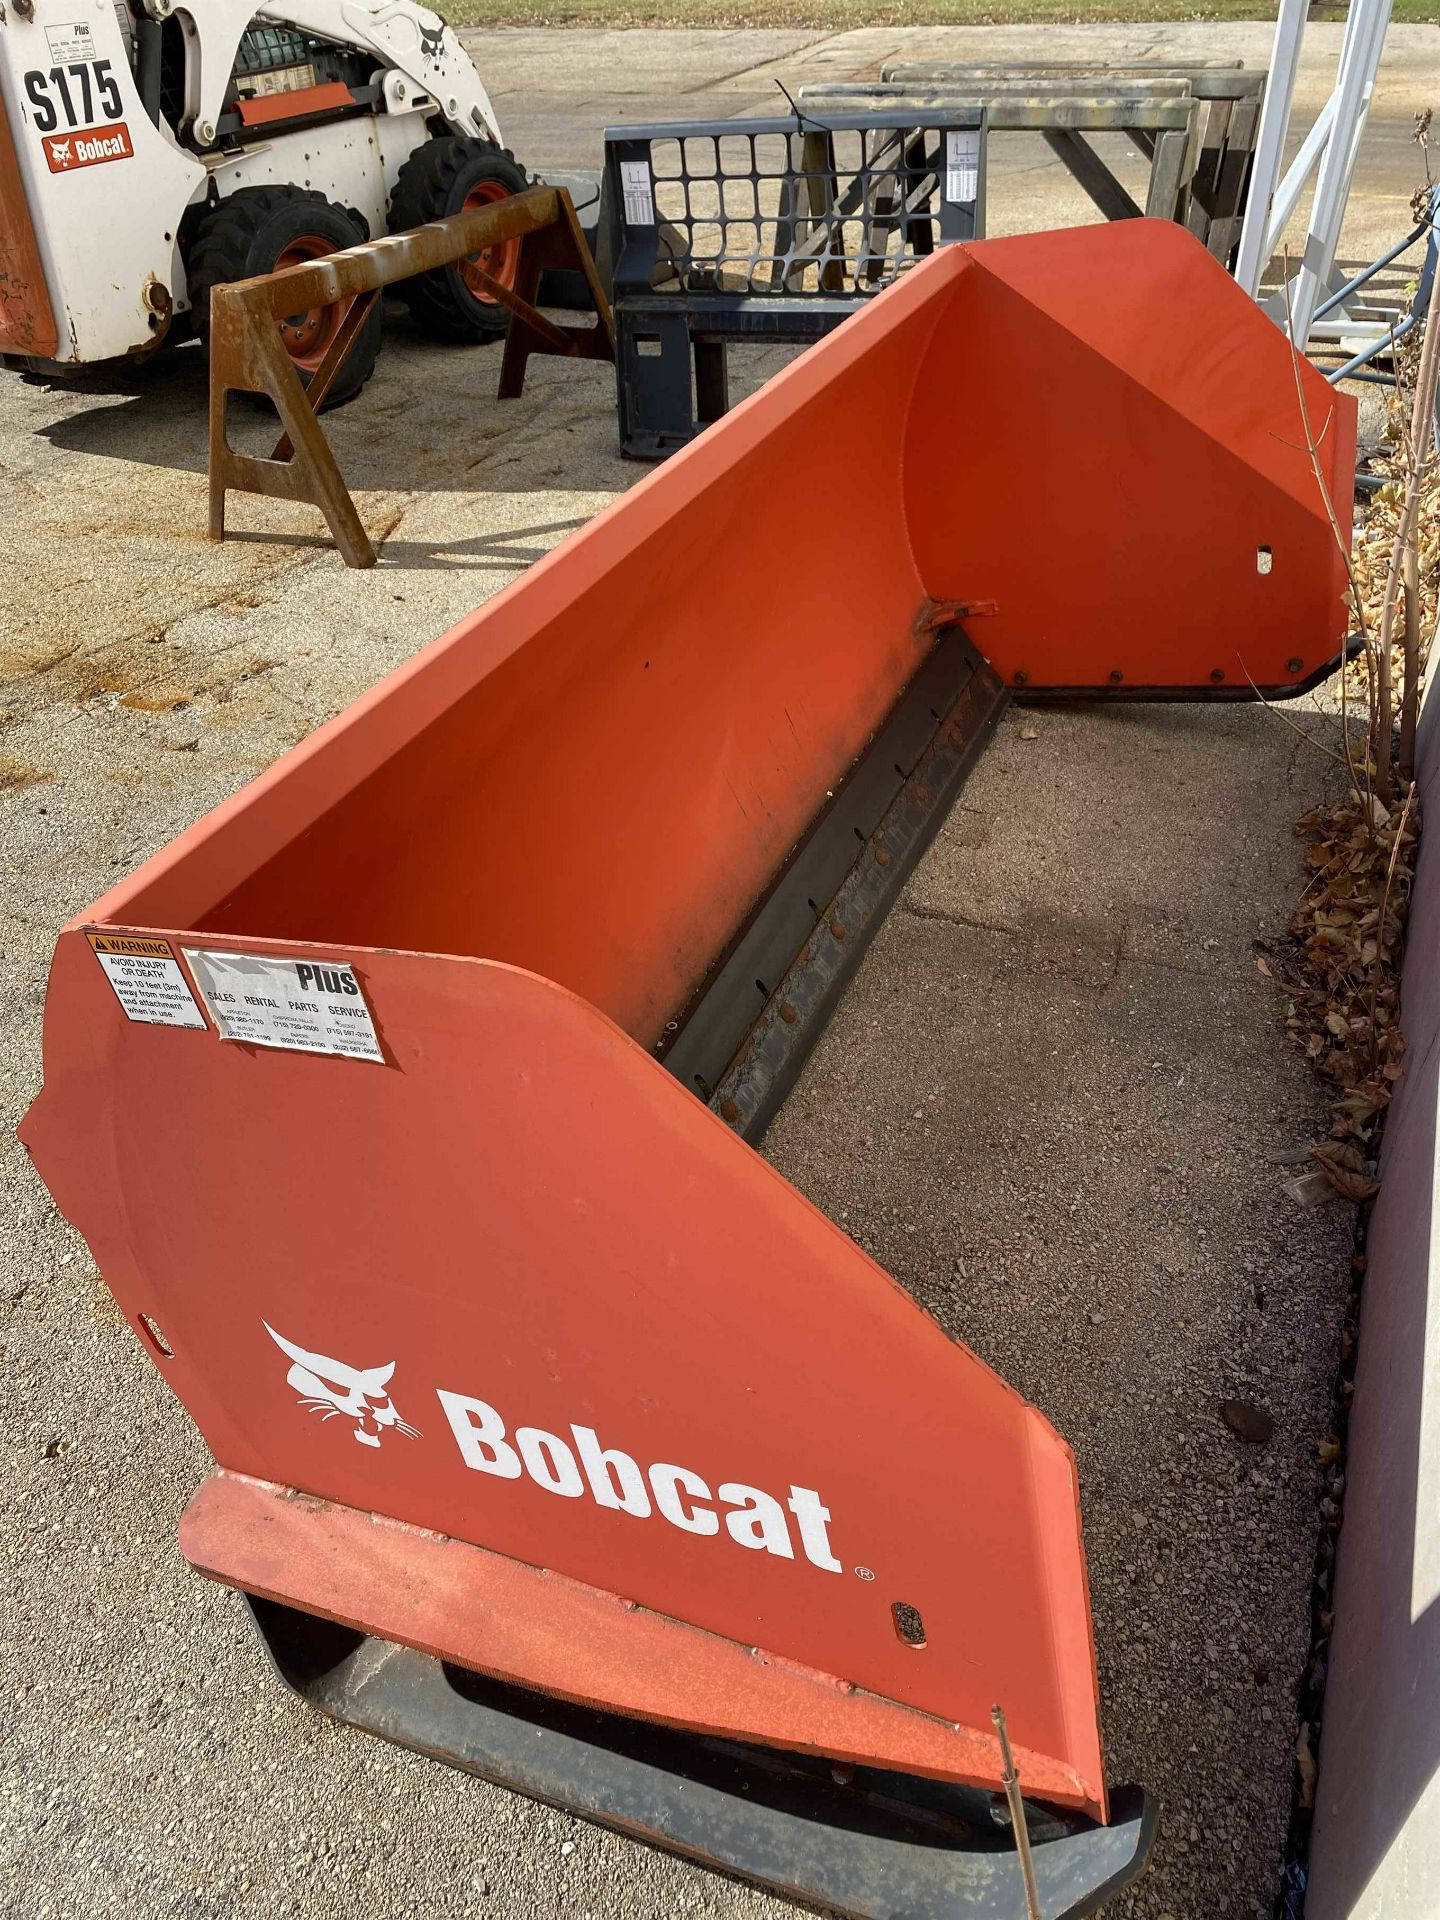 2010 BOBCAT Snowpusher 94, s/n A01500836 - Image 2 of 3